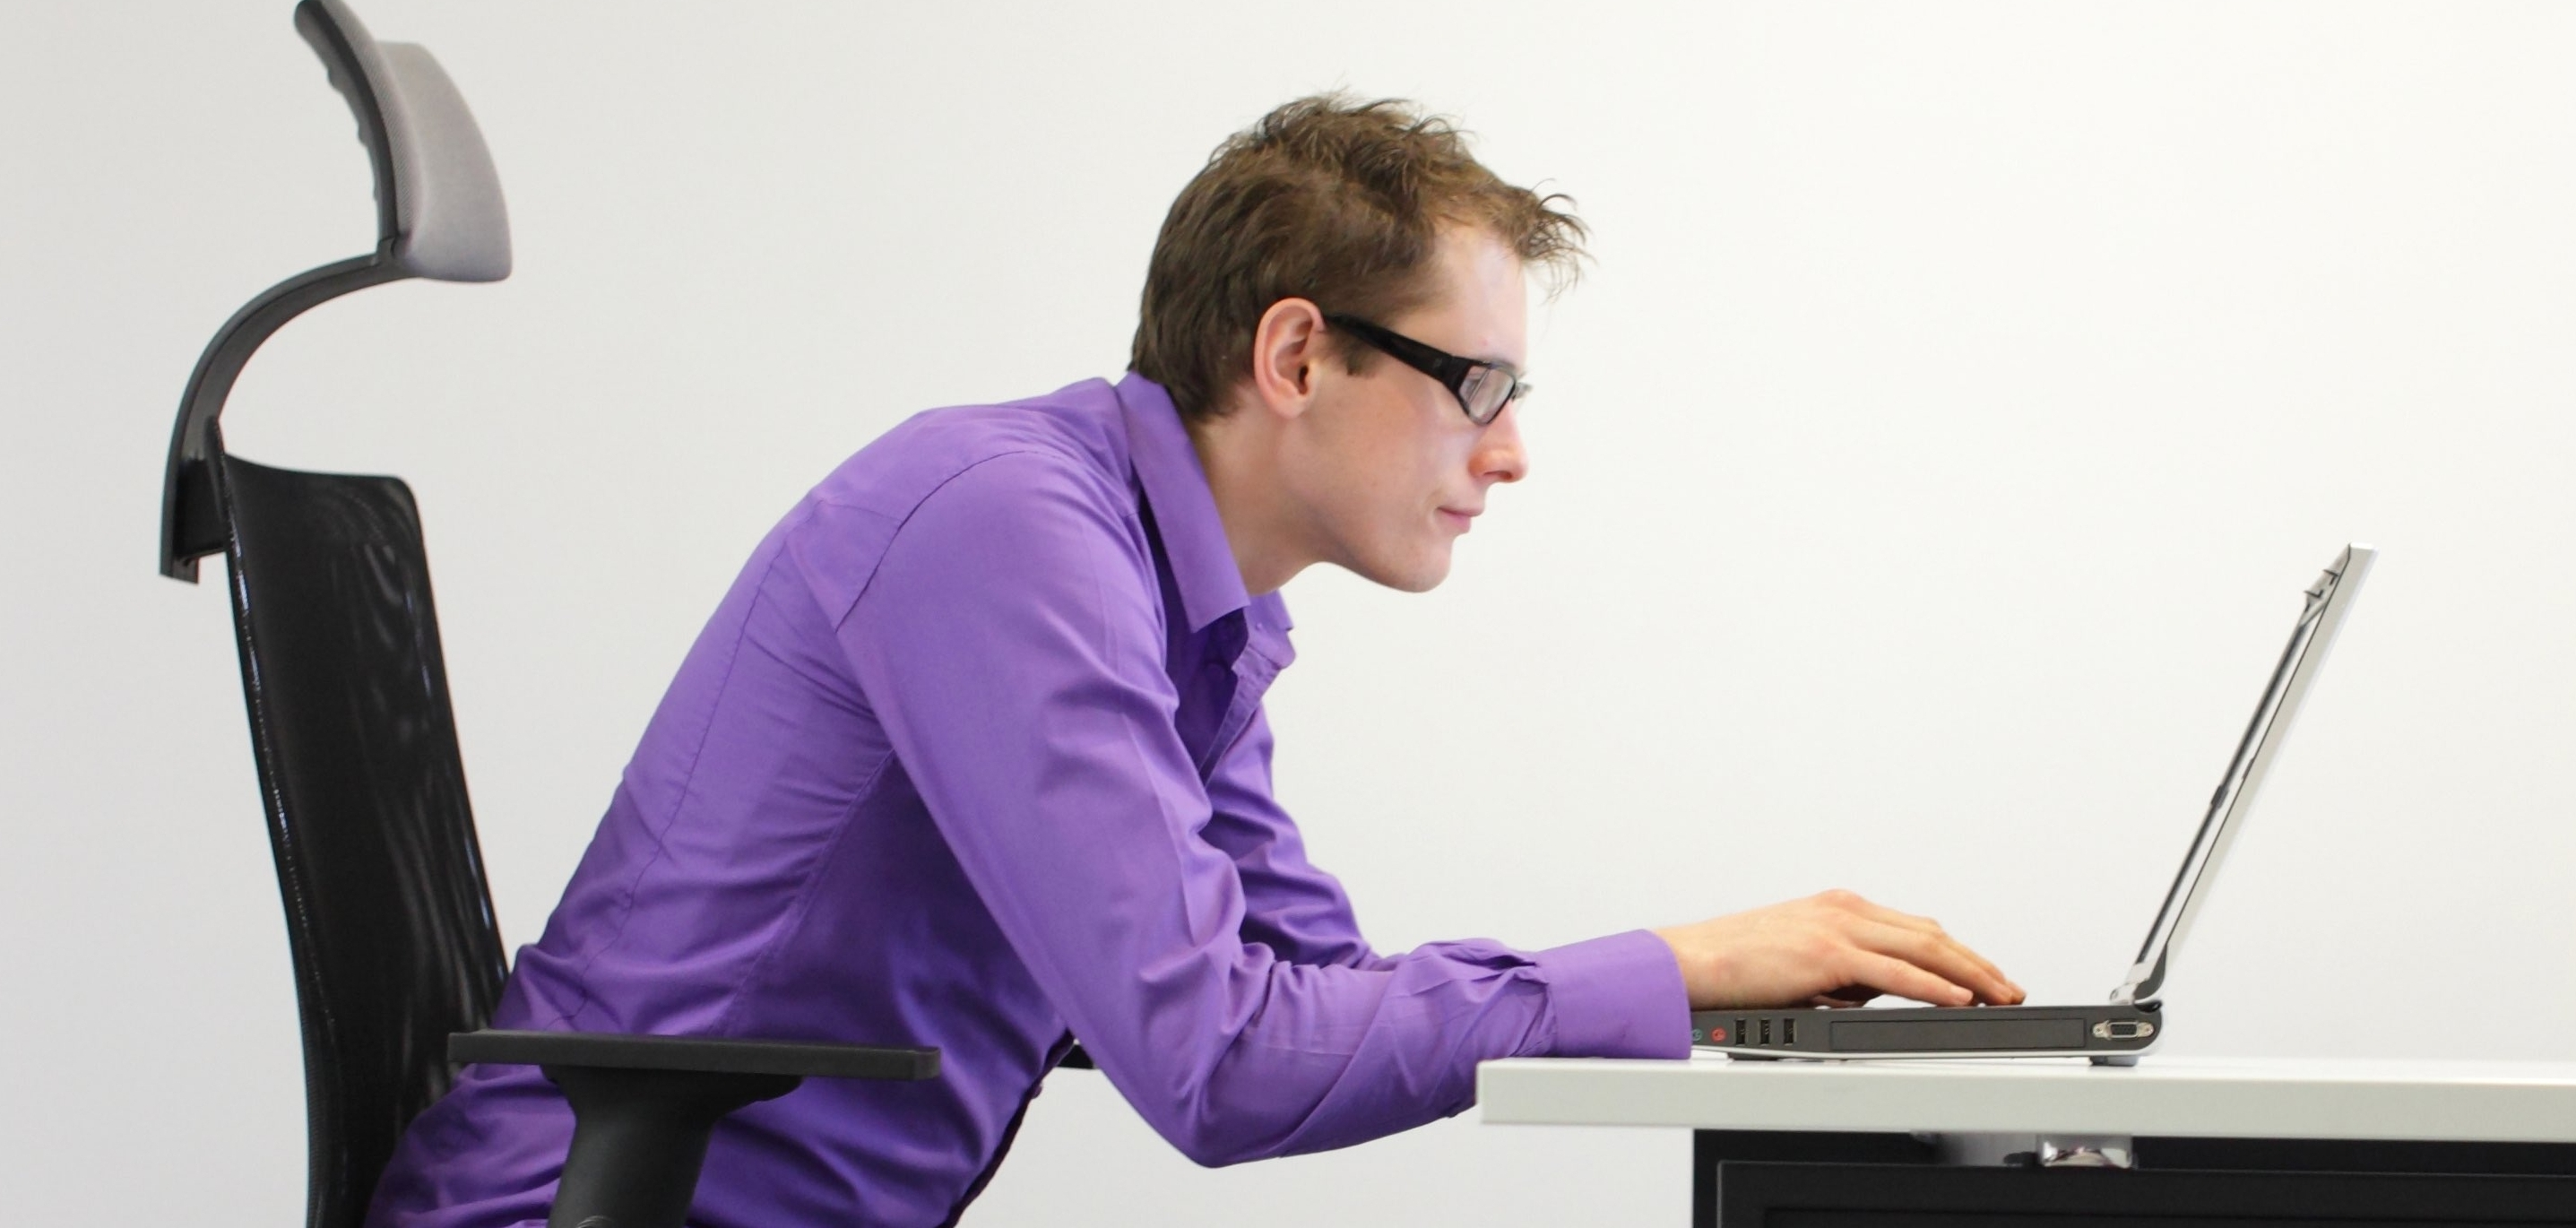 Ergonomics Explained Are Sitting Or Standing Desks Better For Work